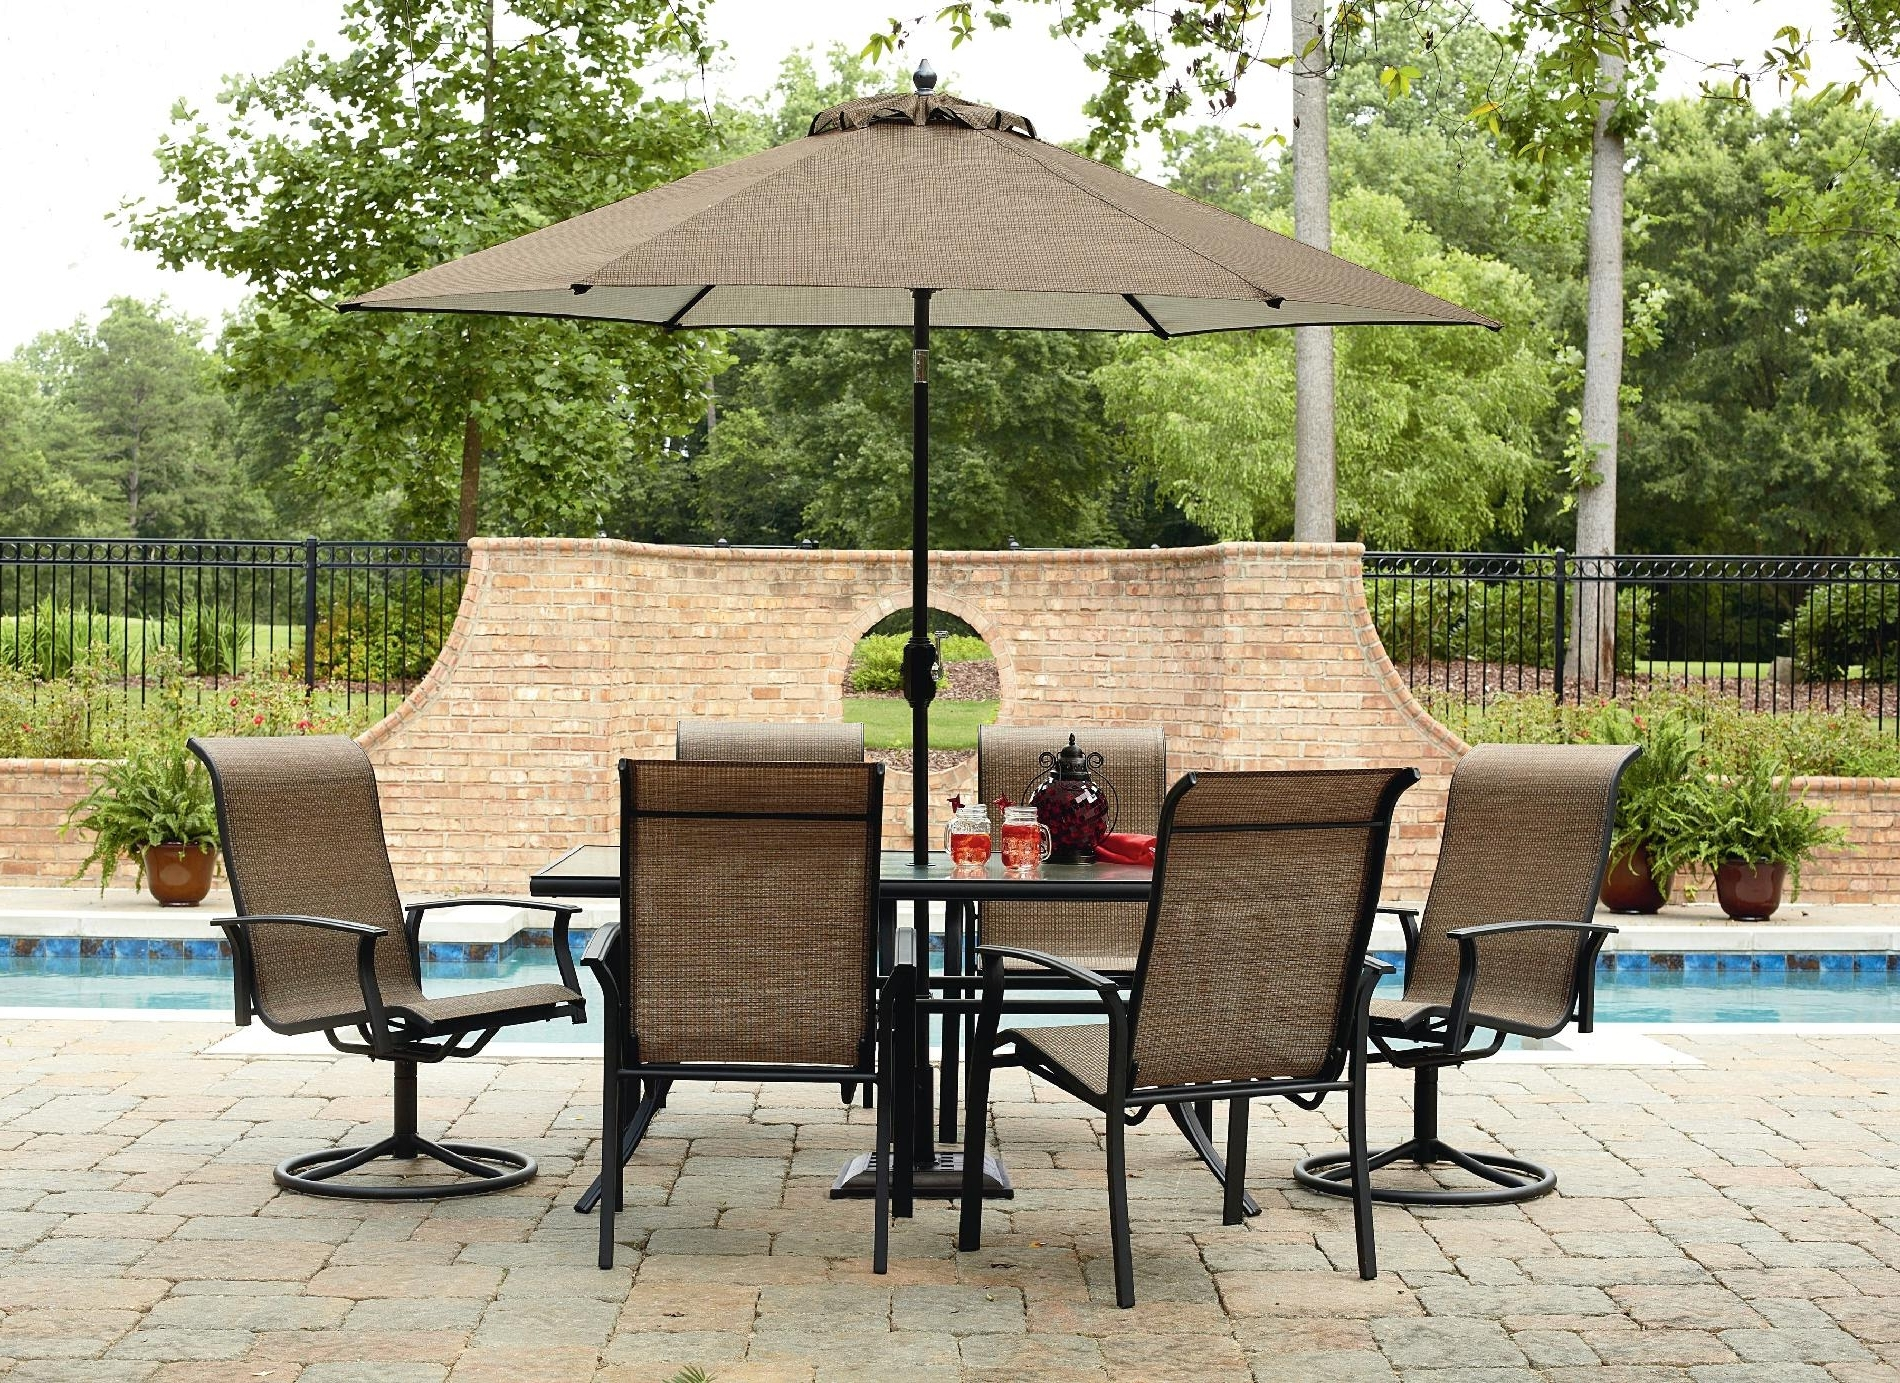 Patio : Small Patio Table And Chairs Patios Horsham Redlands Within Preferred Patio Conversation Sets With Umbrella (View 12 of 20)